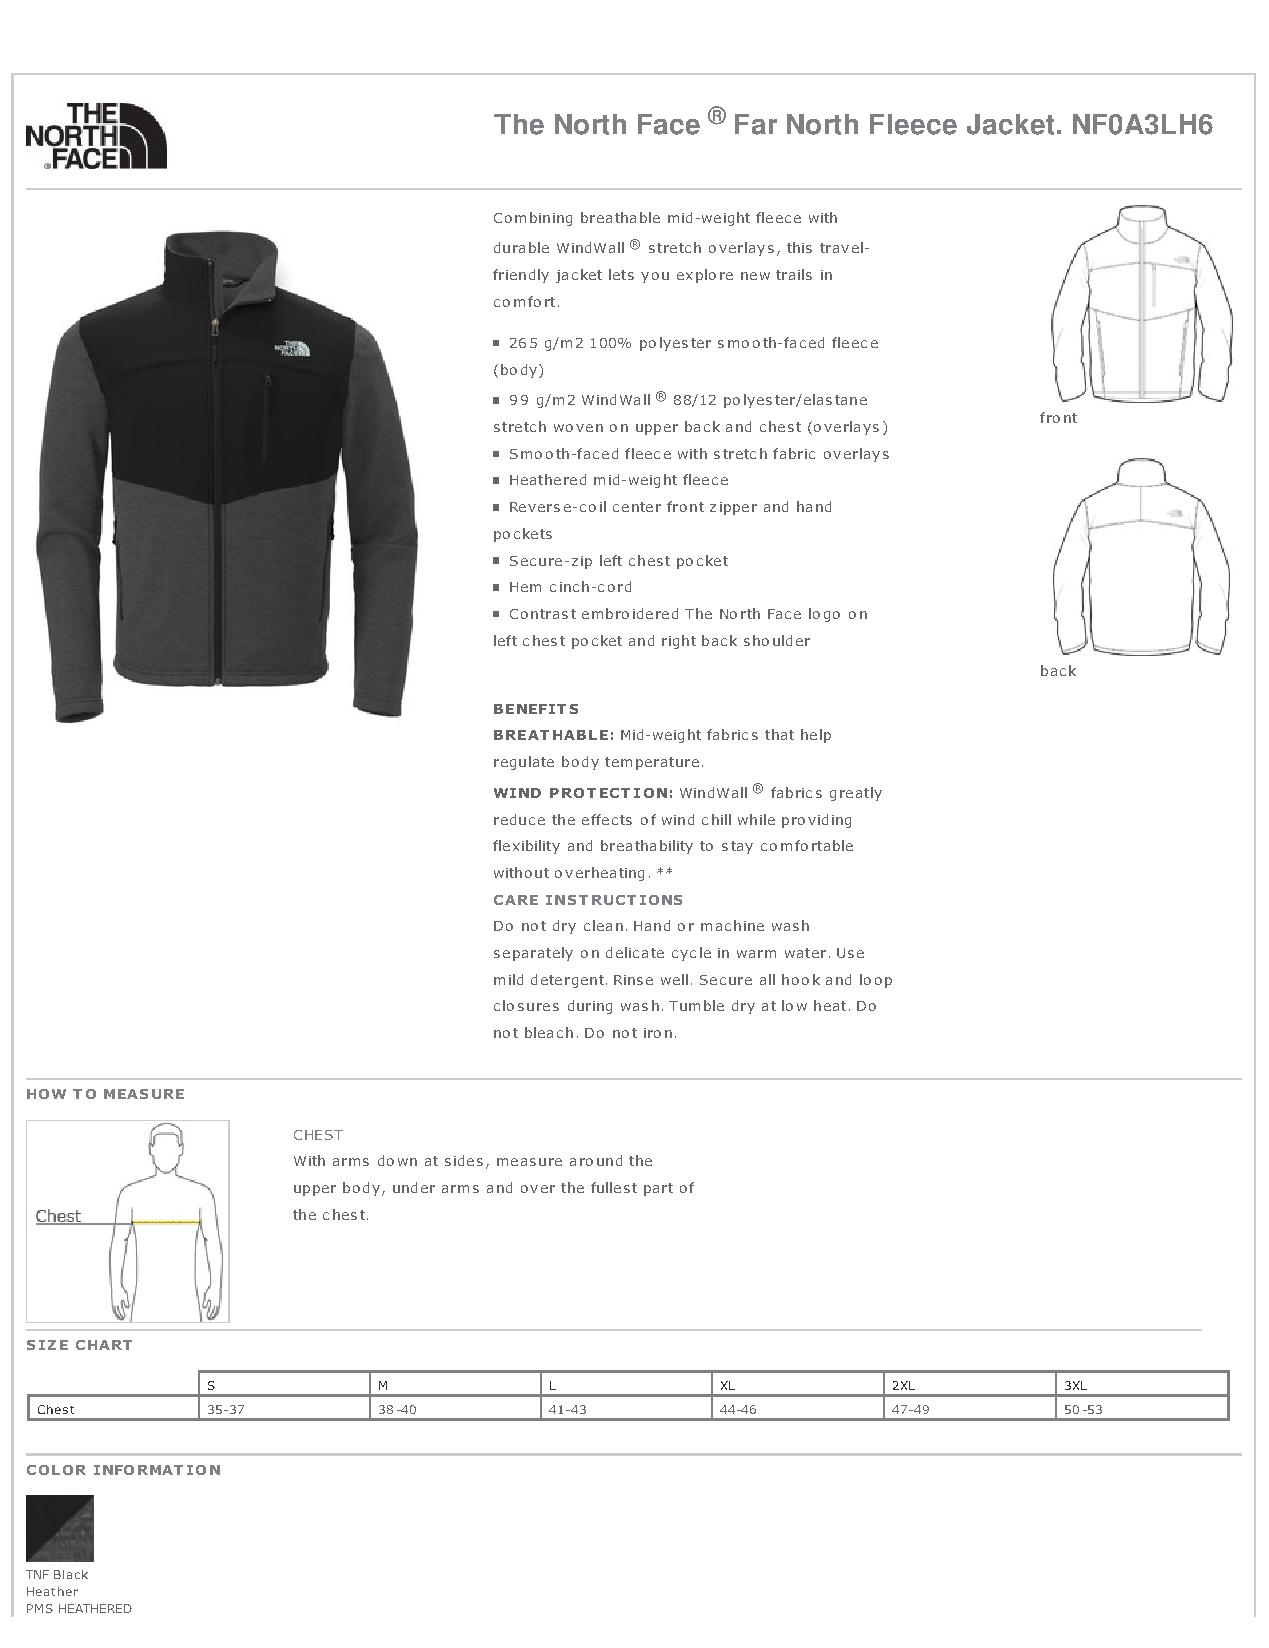 The North Face Nf0a3lh6